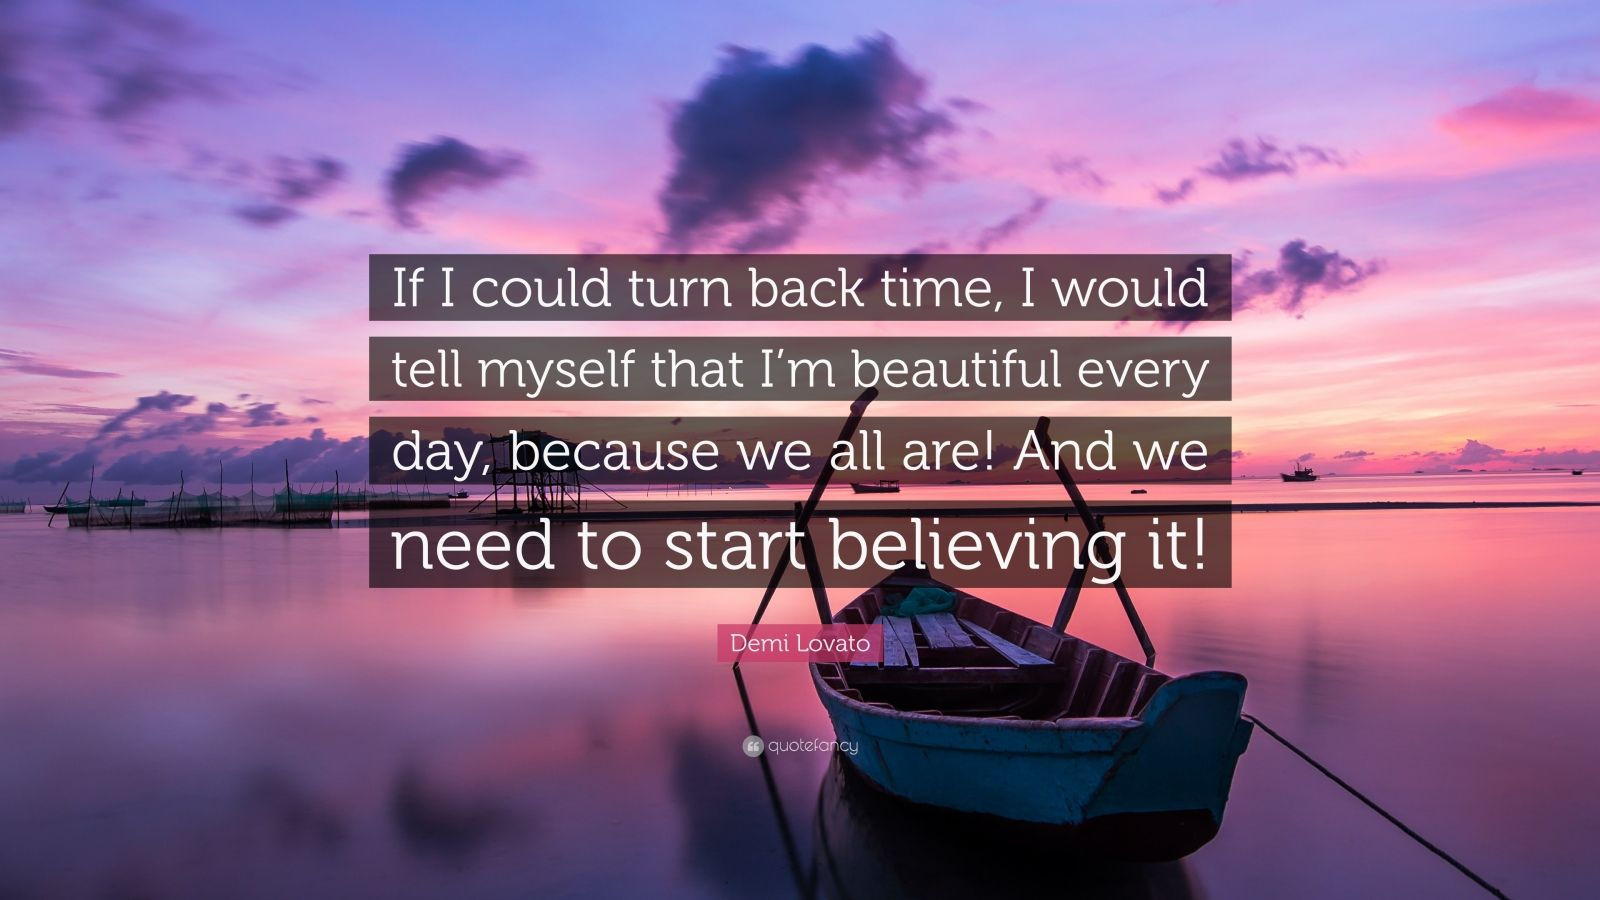 """Demi Lovato Quote: """"If I could turn back time, I would tell myself that I'm beautiful every day, because we all are! And we need to start believing it!"""""""